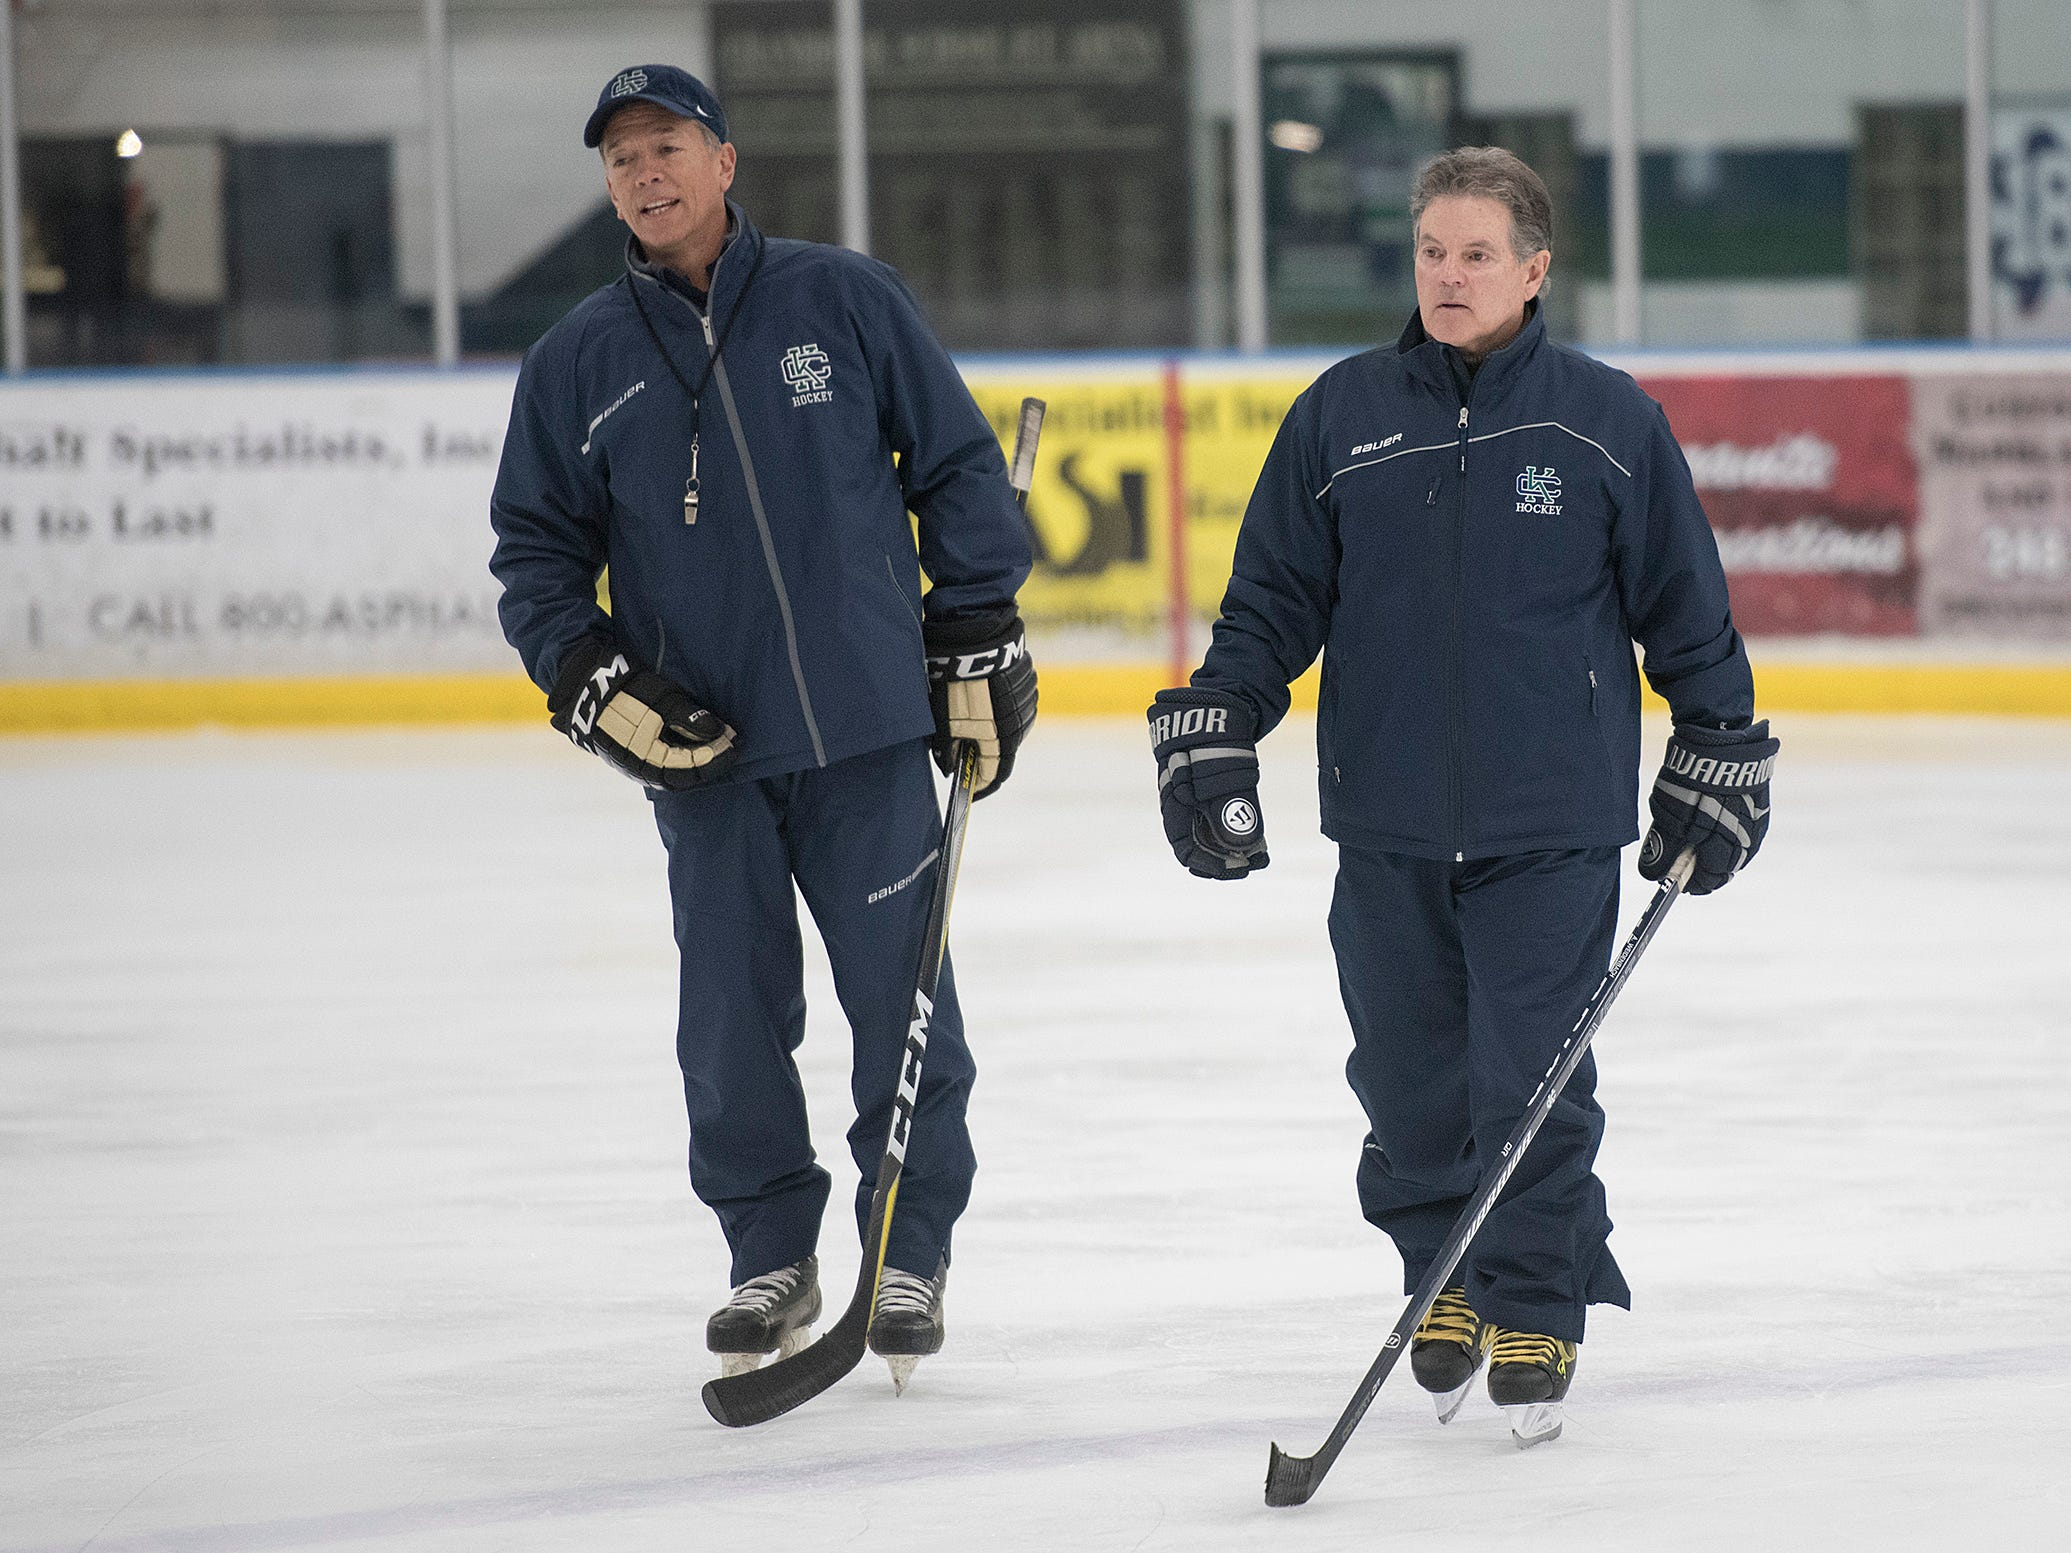 Coach Andy Weidenbach, at right, with assistant coach John LaFontaine at Wednesday afternoon practice.